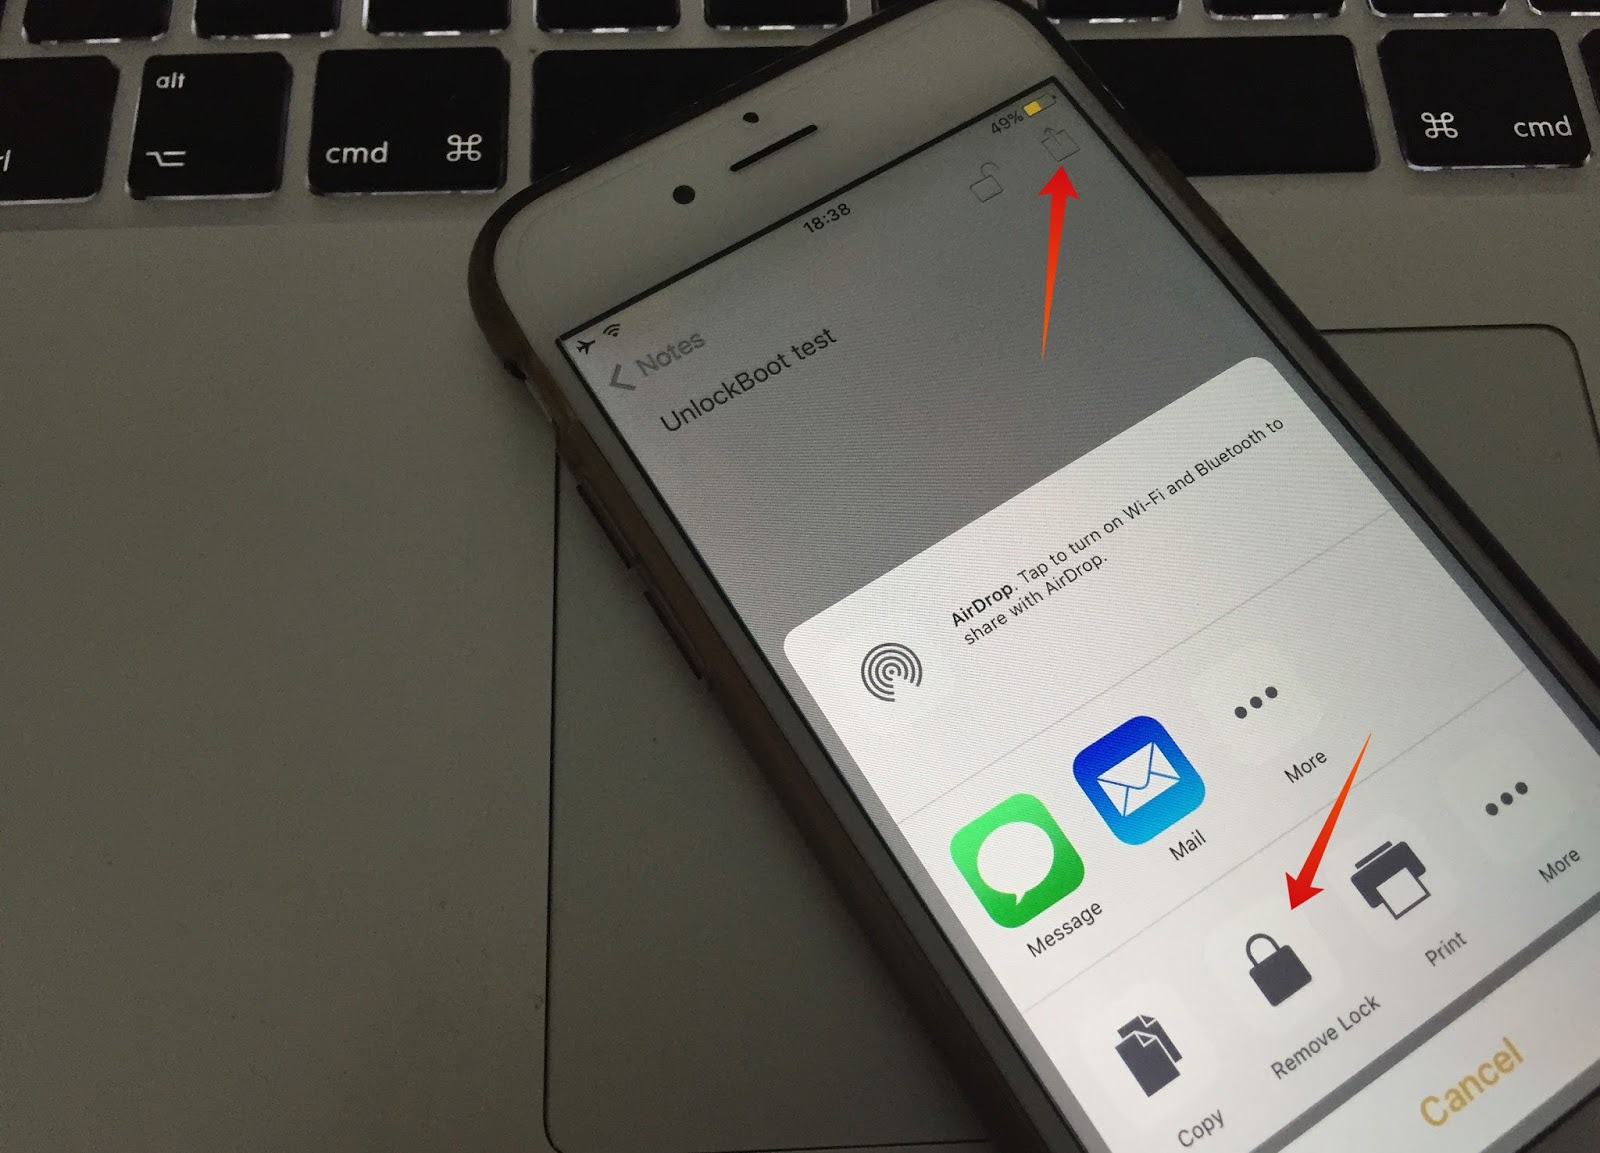 How To Unlock A Locked Iphone 5 Without Password